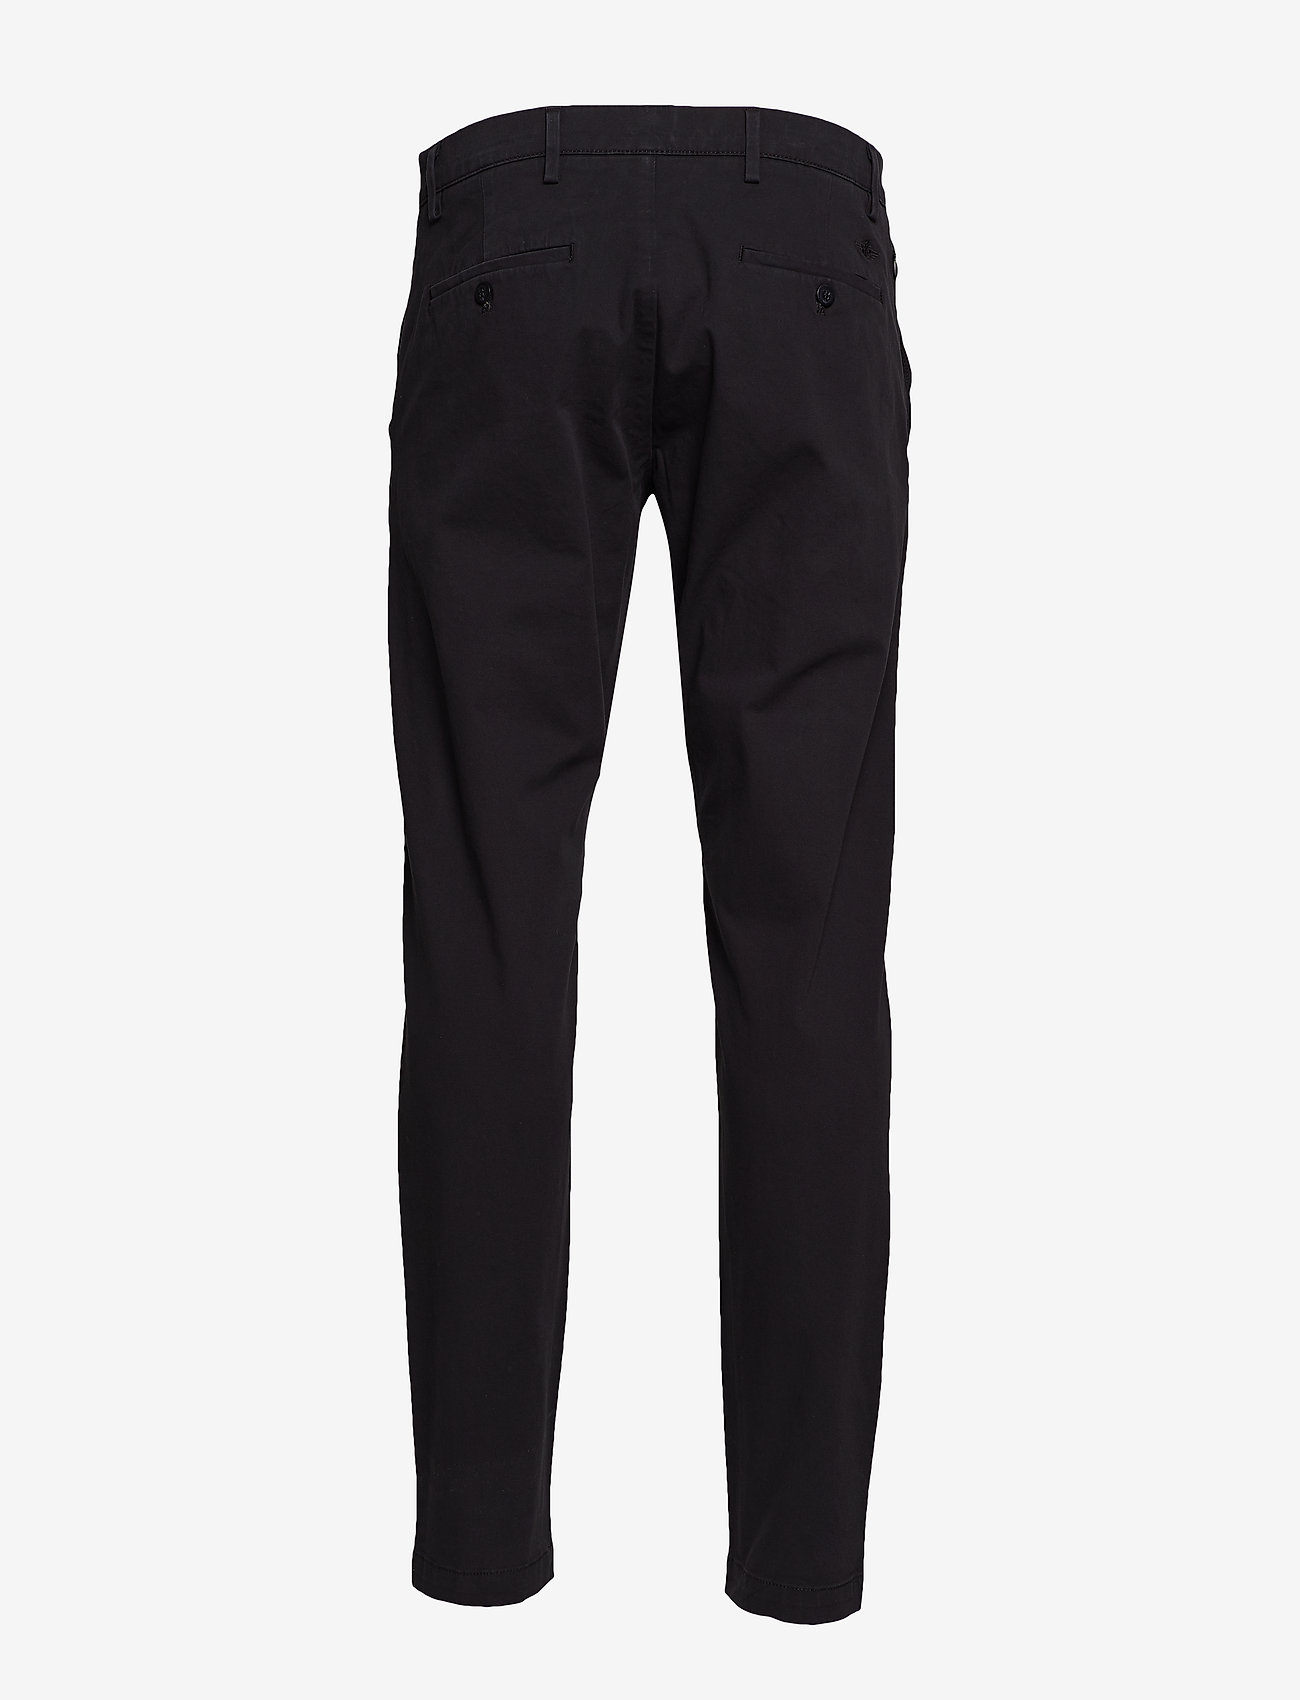 Dockers - SMART 360 CHINO TAPER BLACK - chinos - blacks - 1